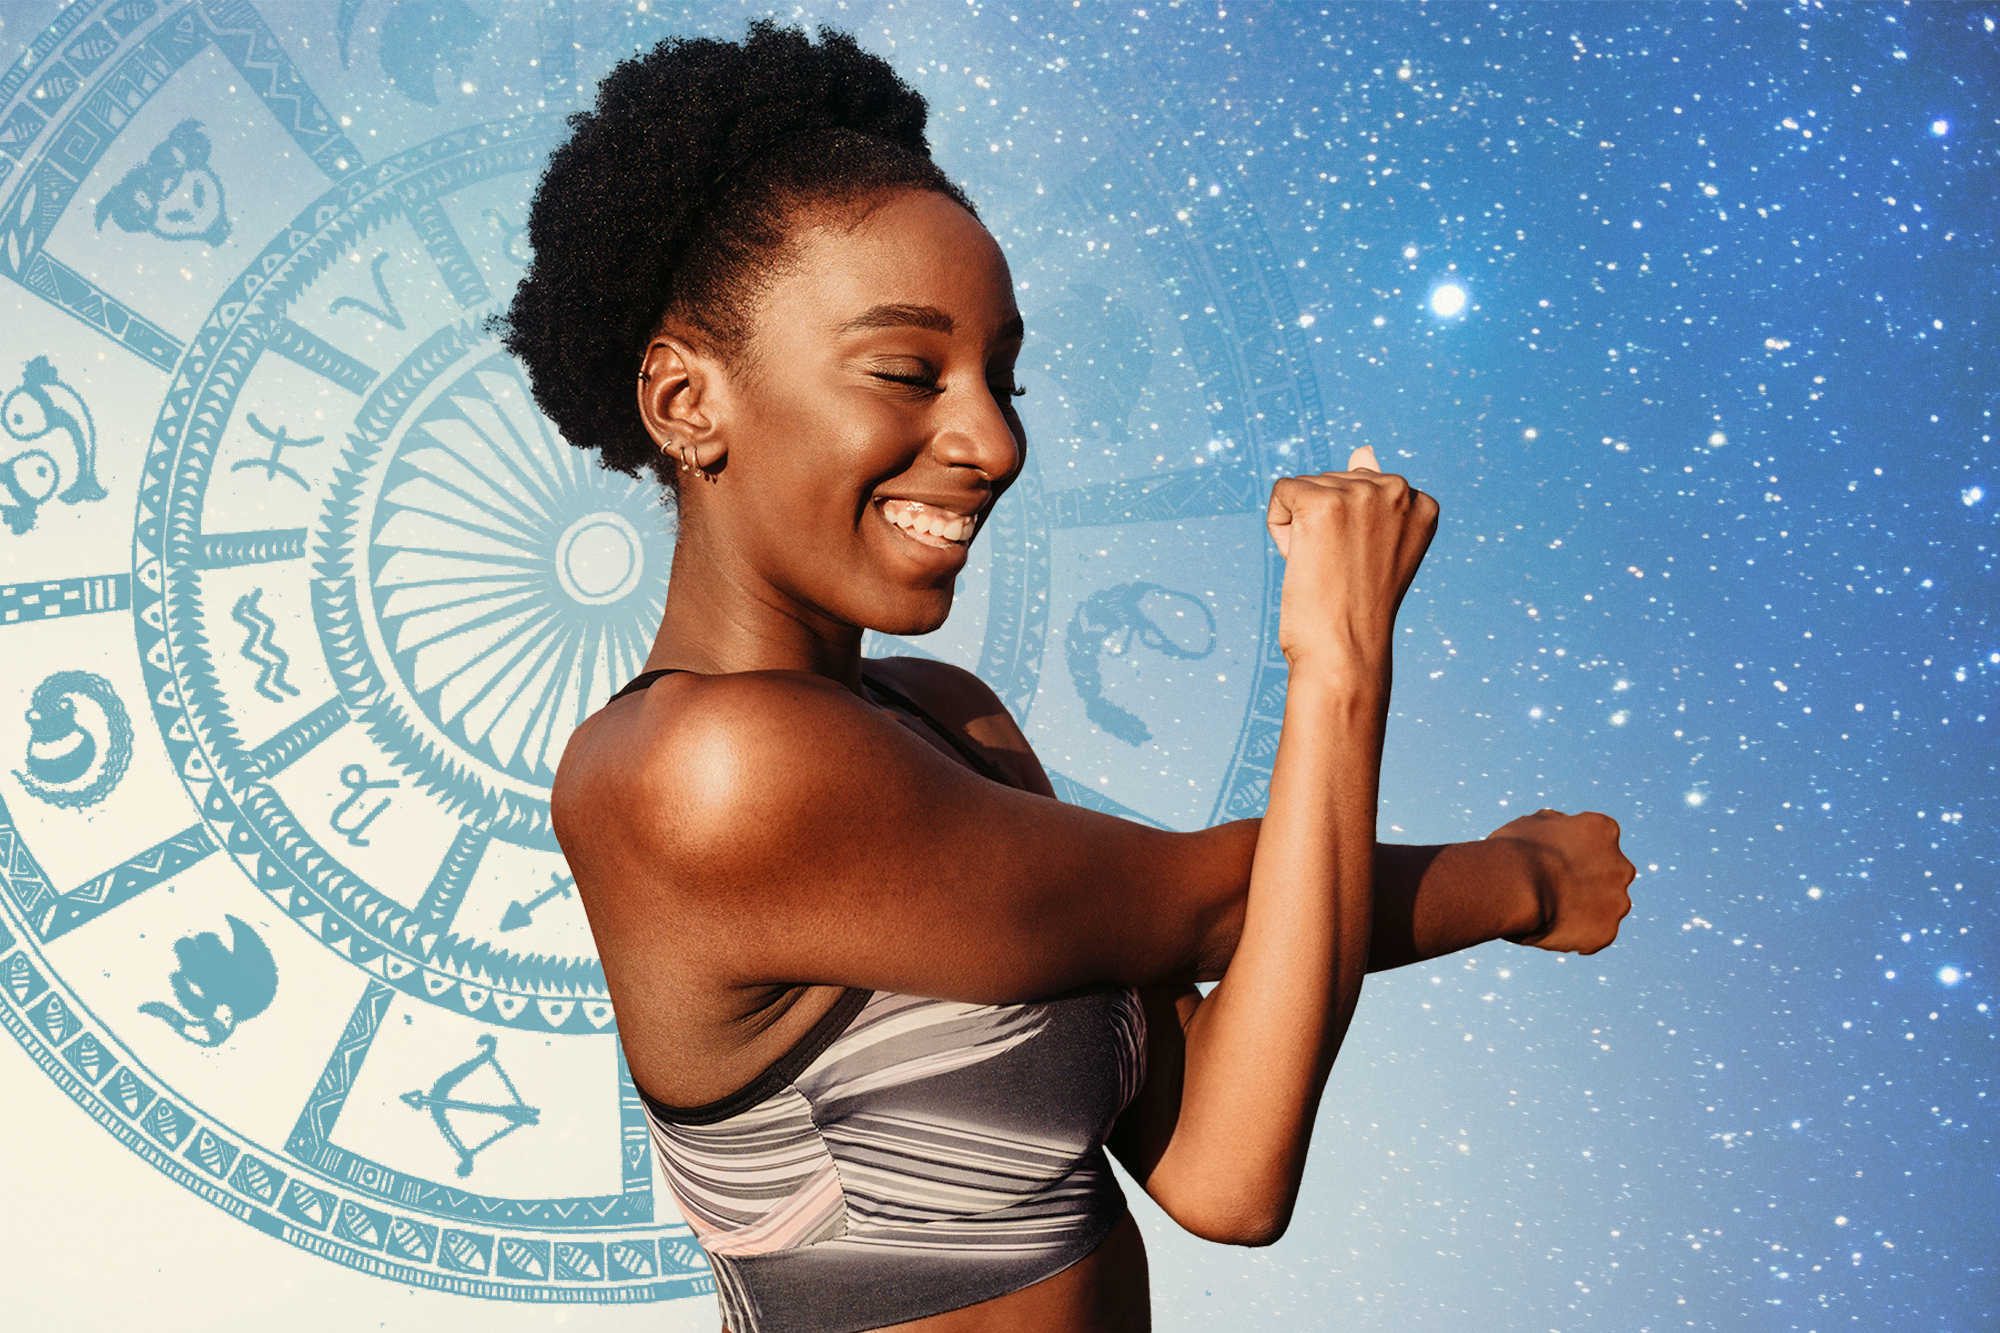 A woman stretching in workout gear on a background that includes an astrology chart and outer-space